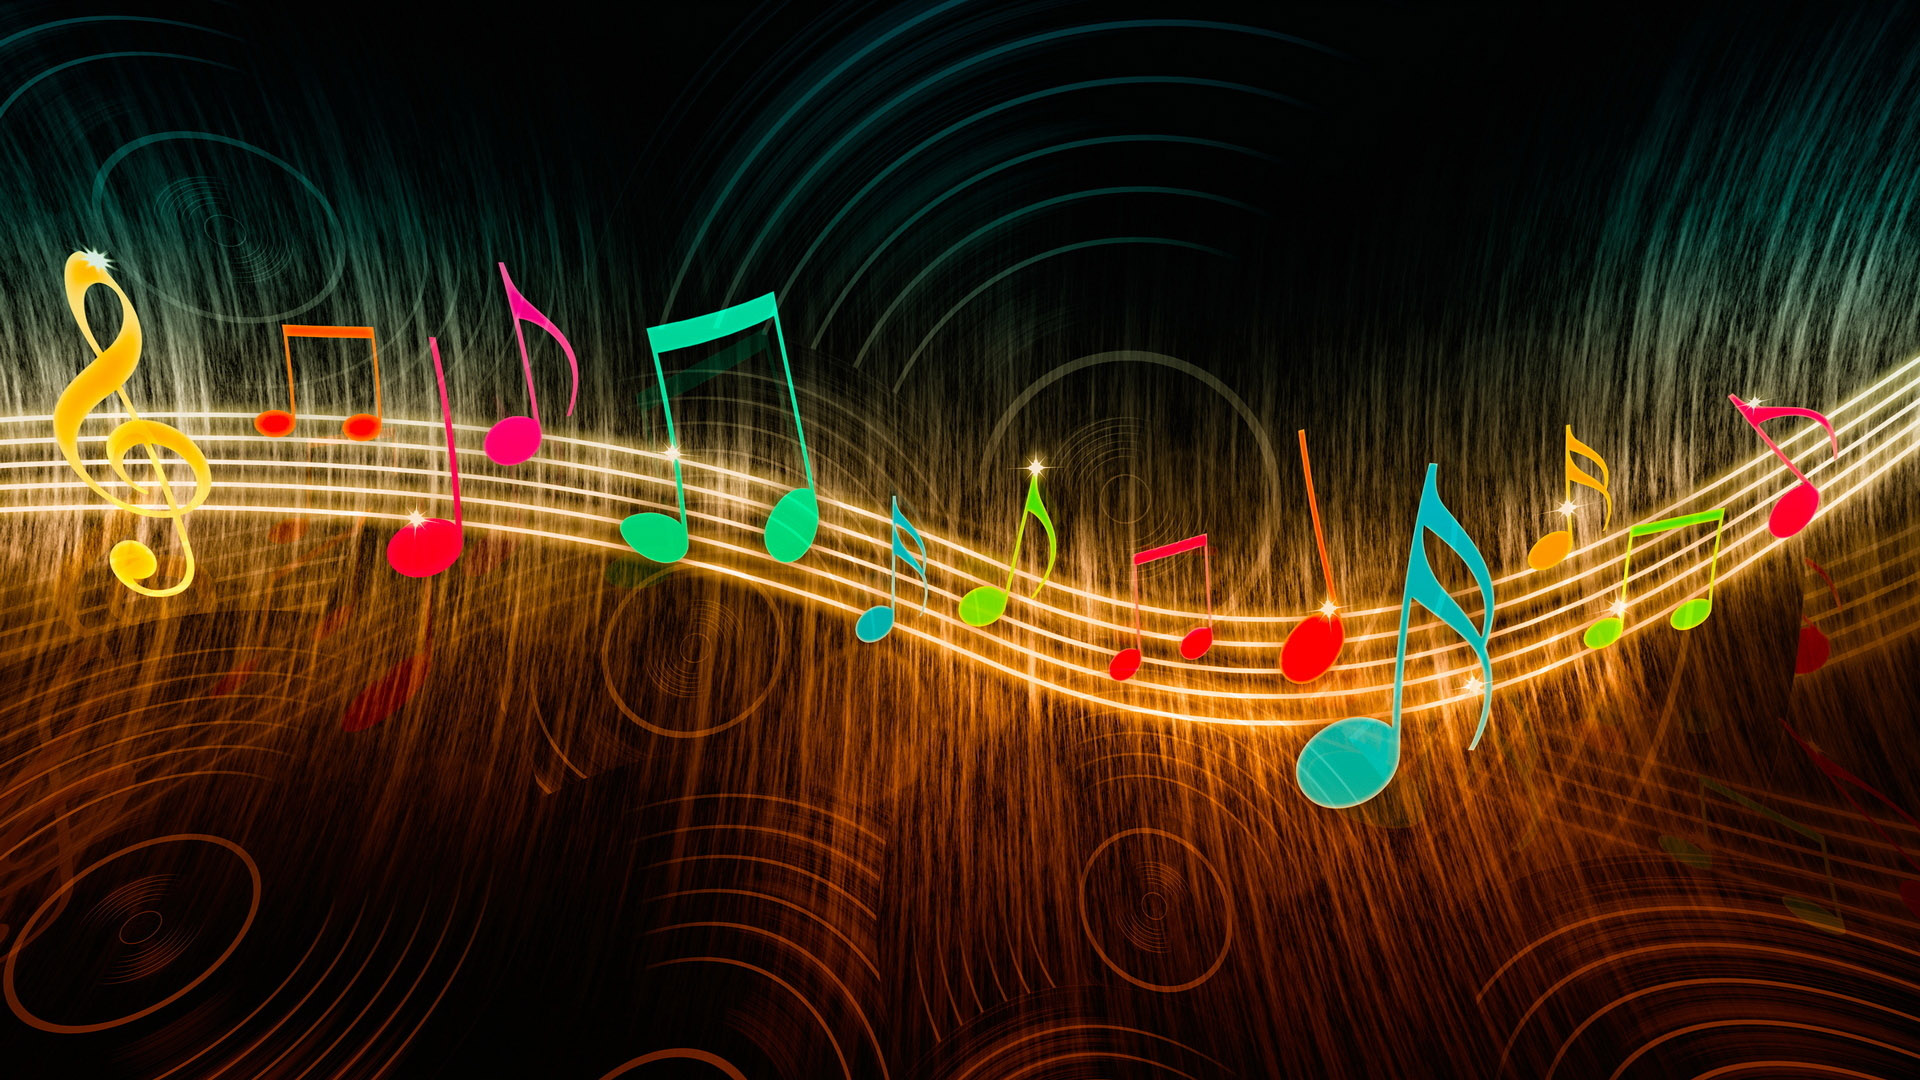 Music s wallpaper 1920x1080 80508 - Wallpaper 1920x1080 music ...